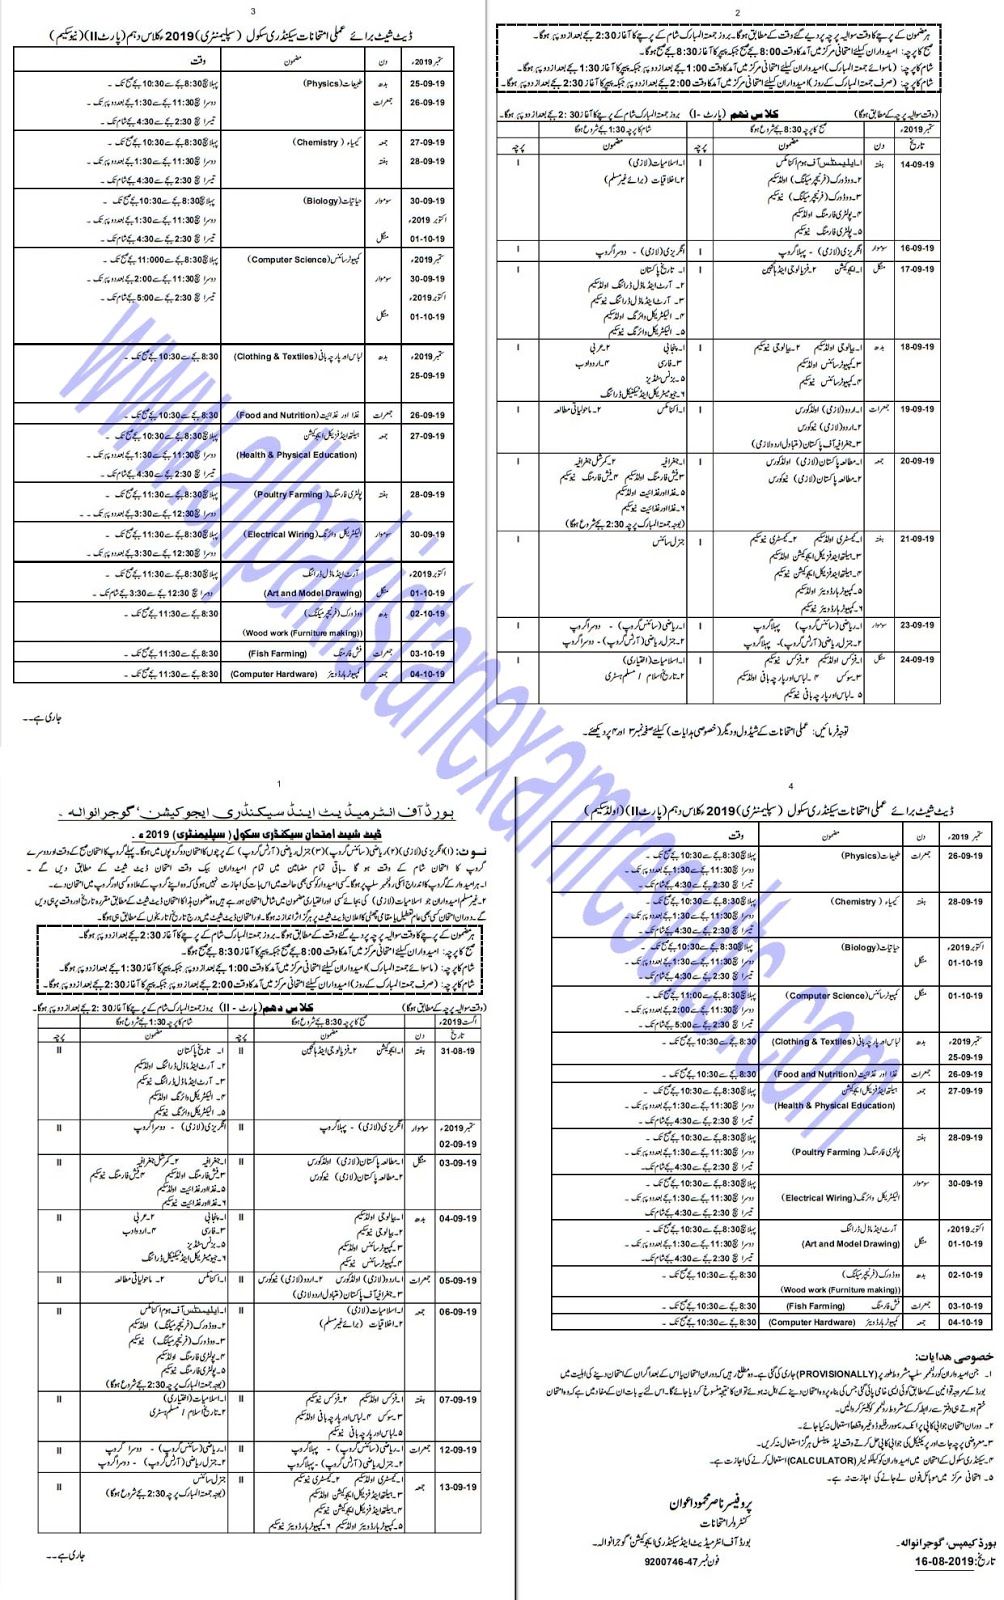 Date Sheet For SSC Supplementary Gujranwala board 2019